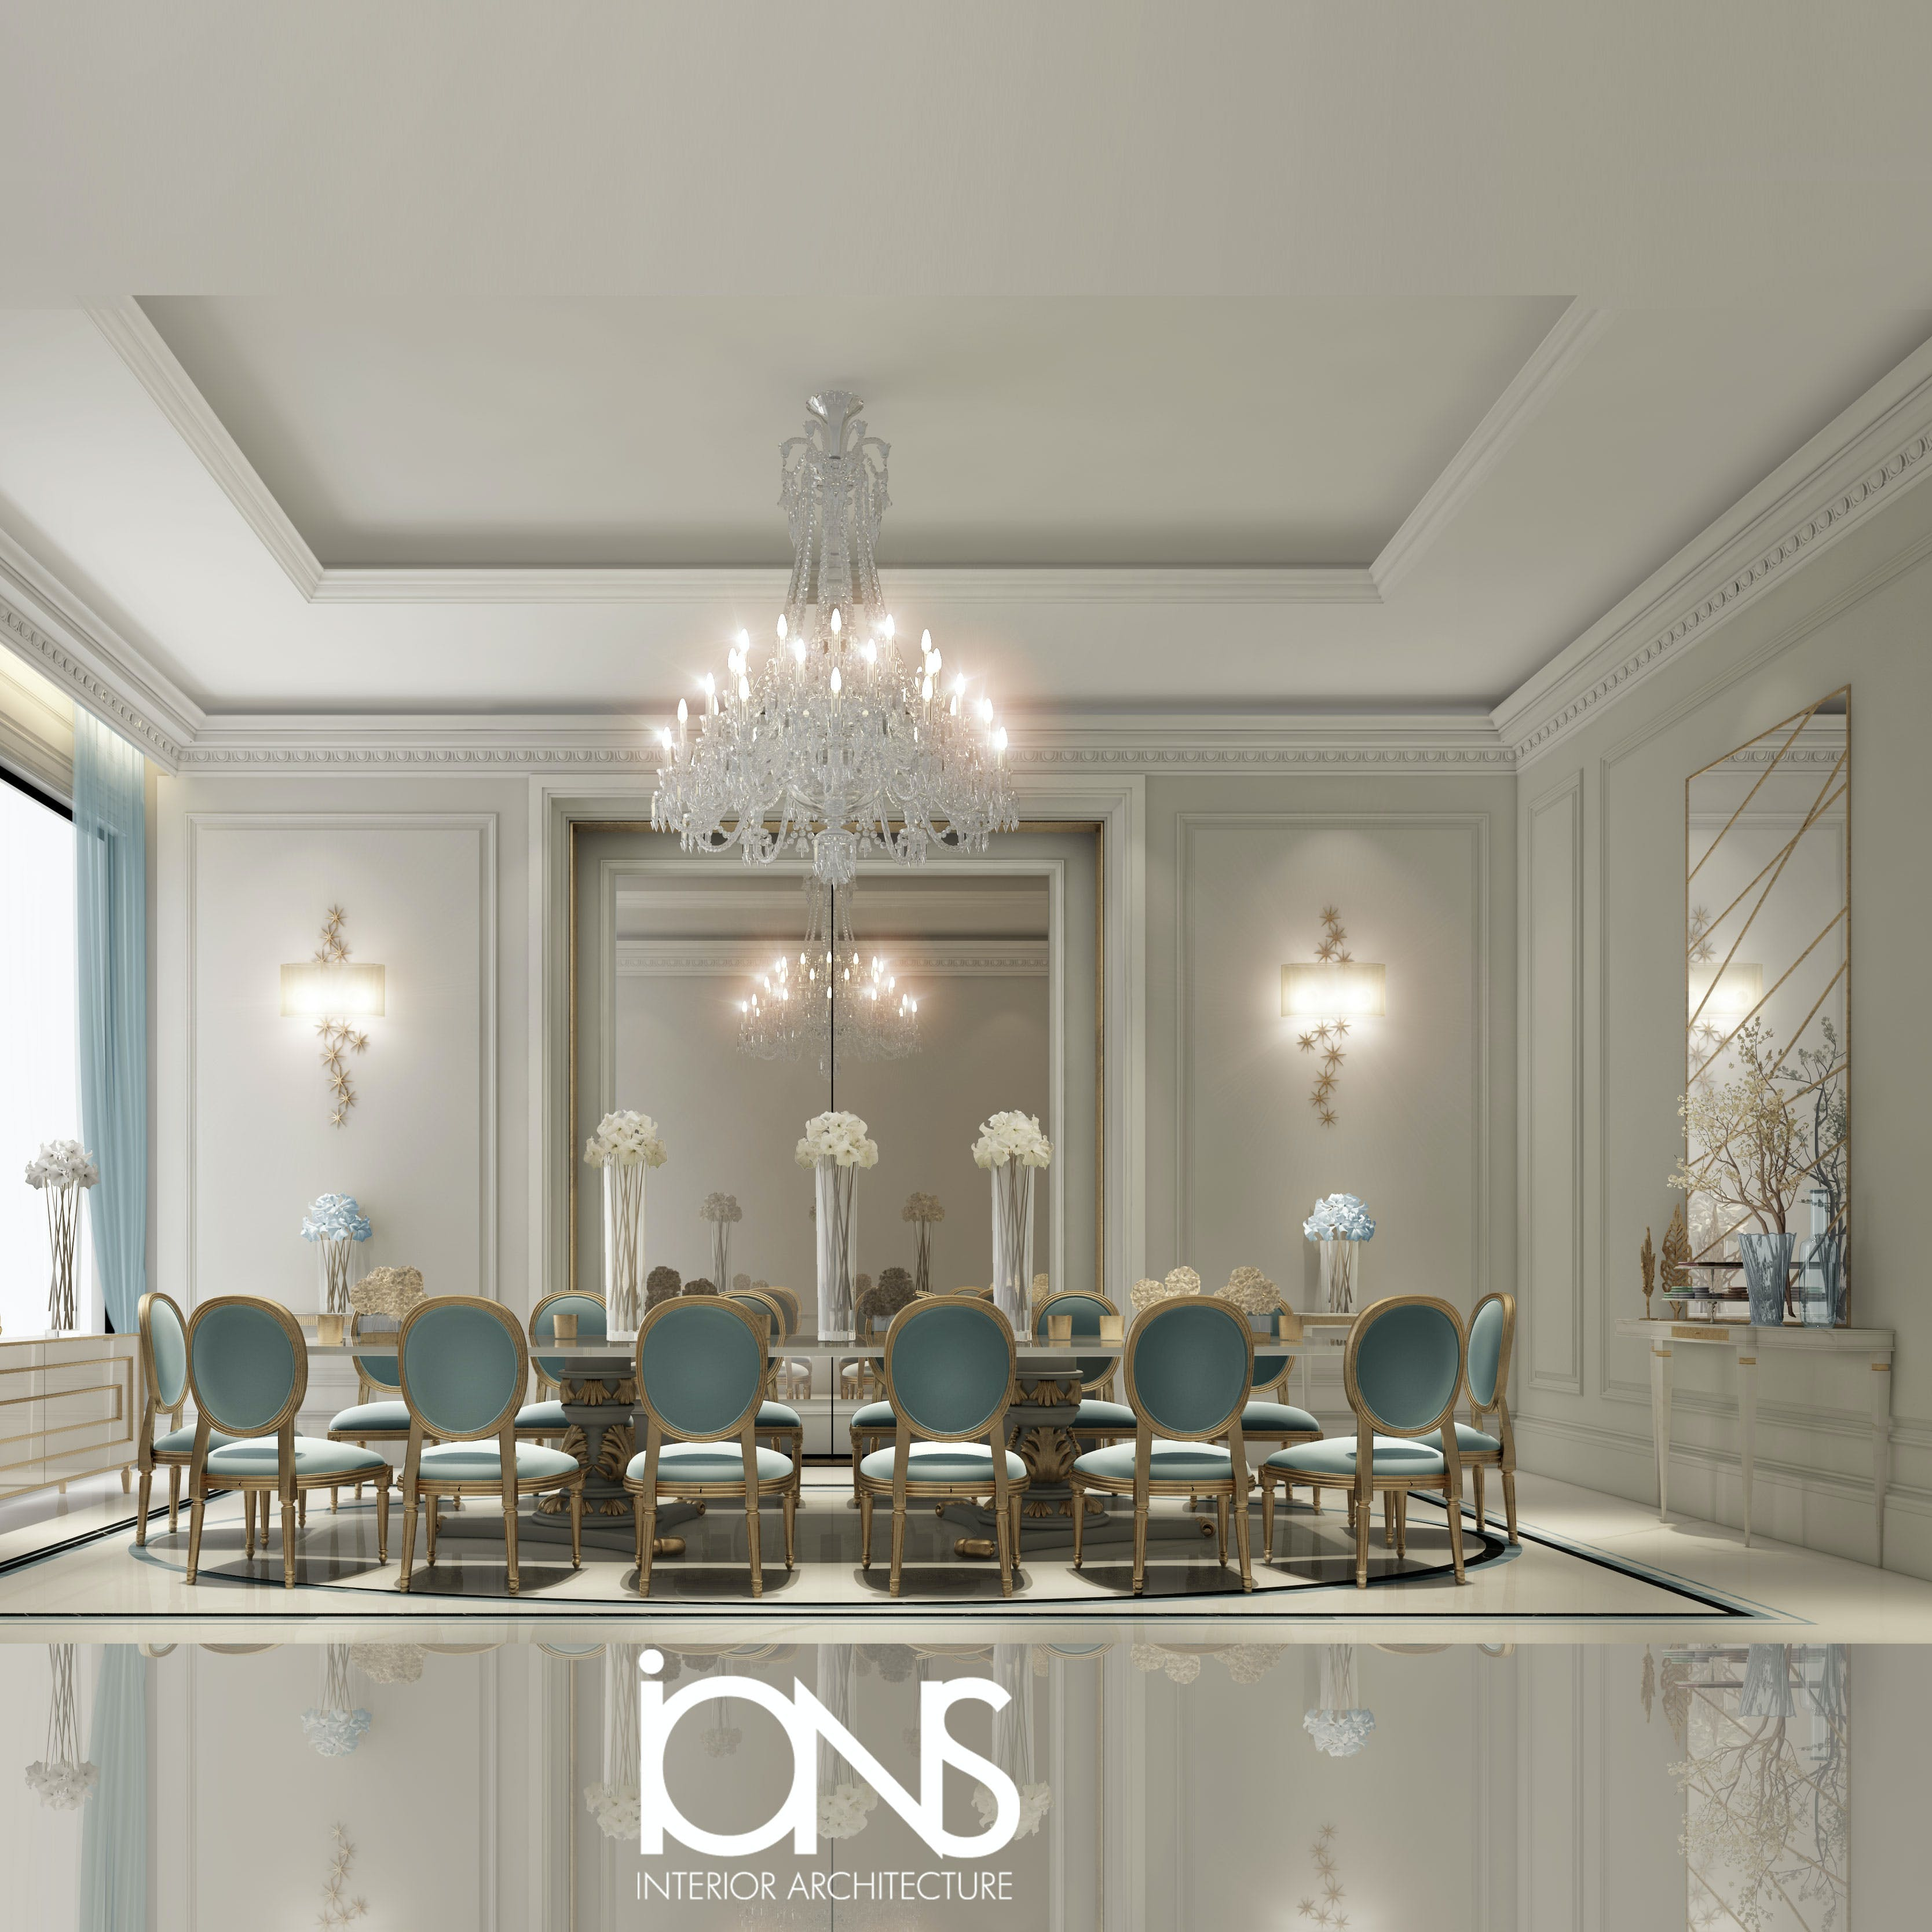 Ions Interior Design Dubai dining room design in classic french style interiors | ions